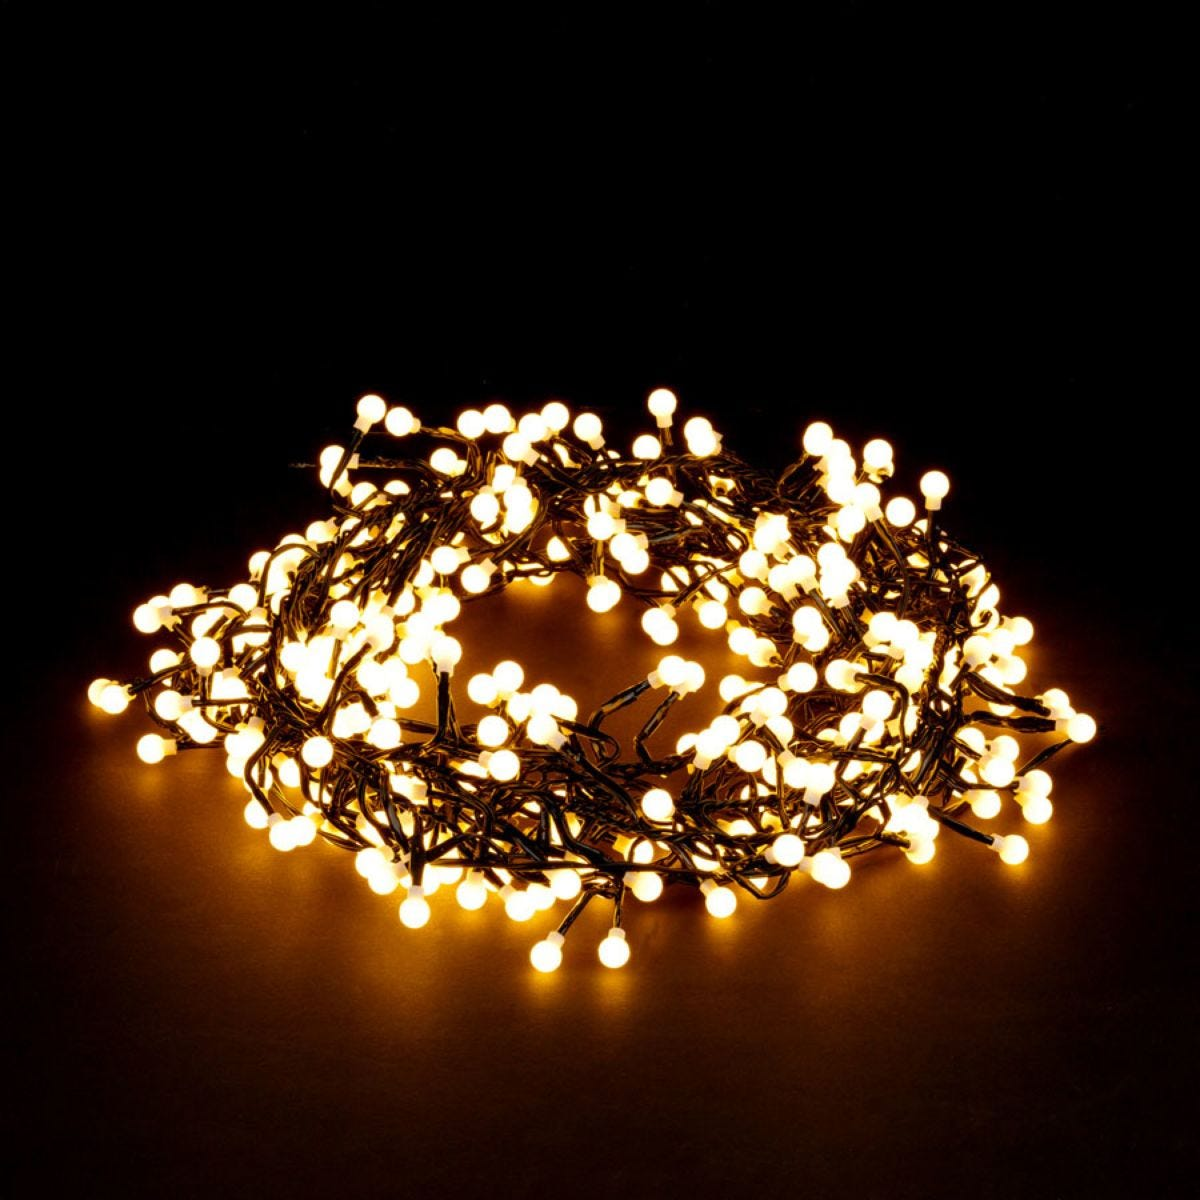 Robert Dyas Mains Operated LED Cluster Berry Lights - Warm White